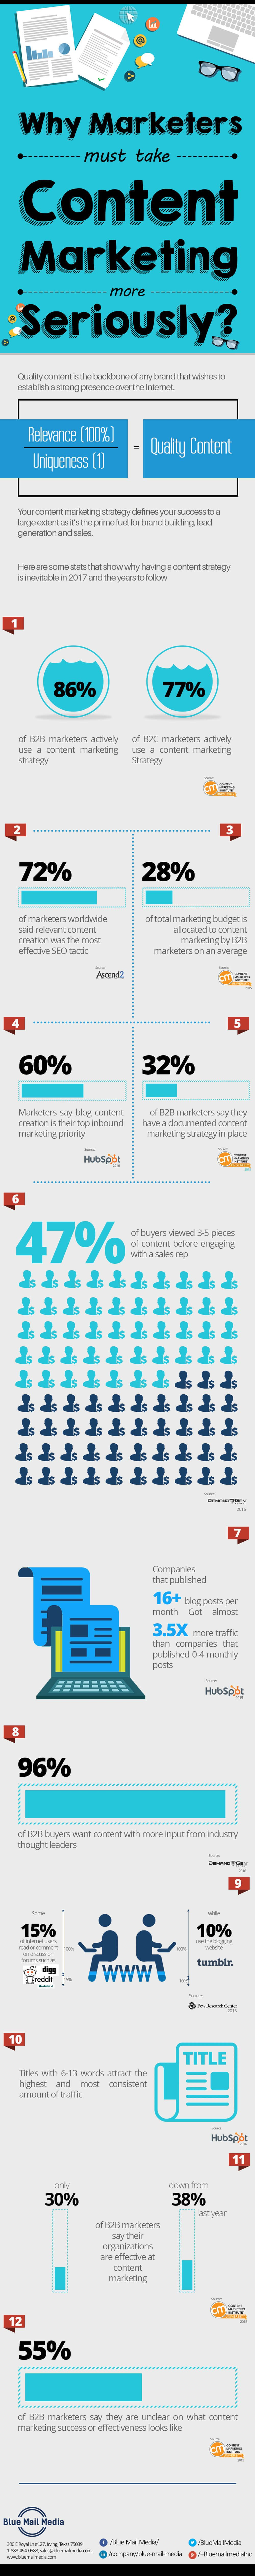 Why Marketers Must Focus on Their Content Strategy - Infographic